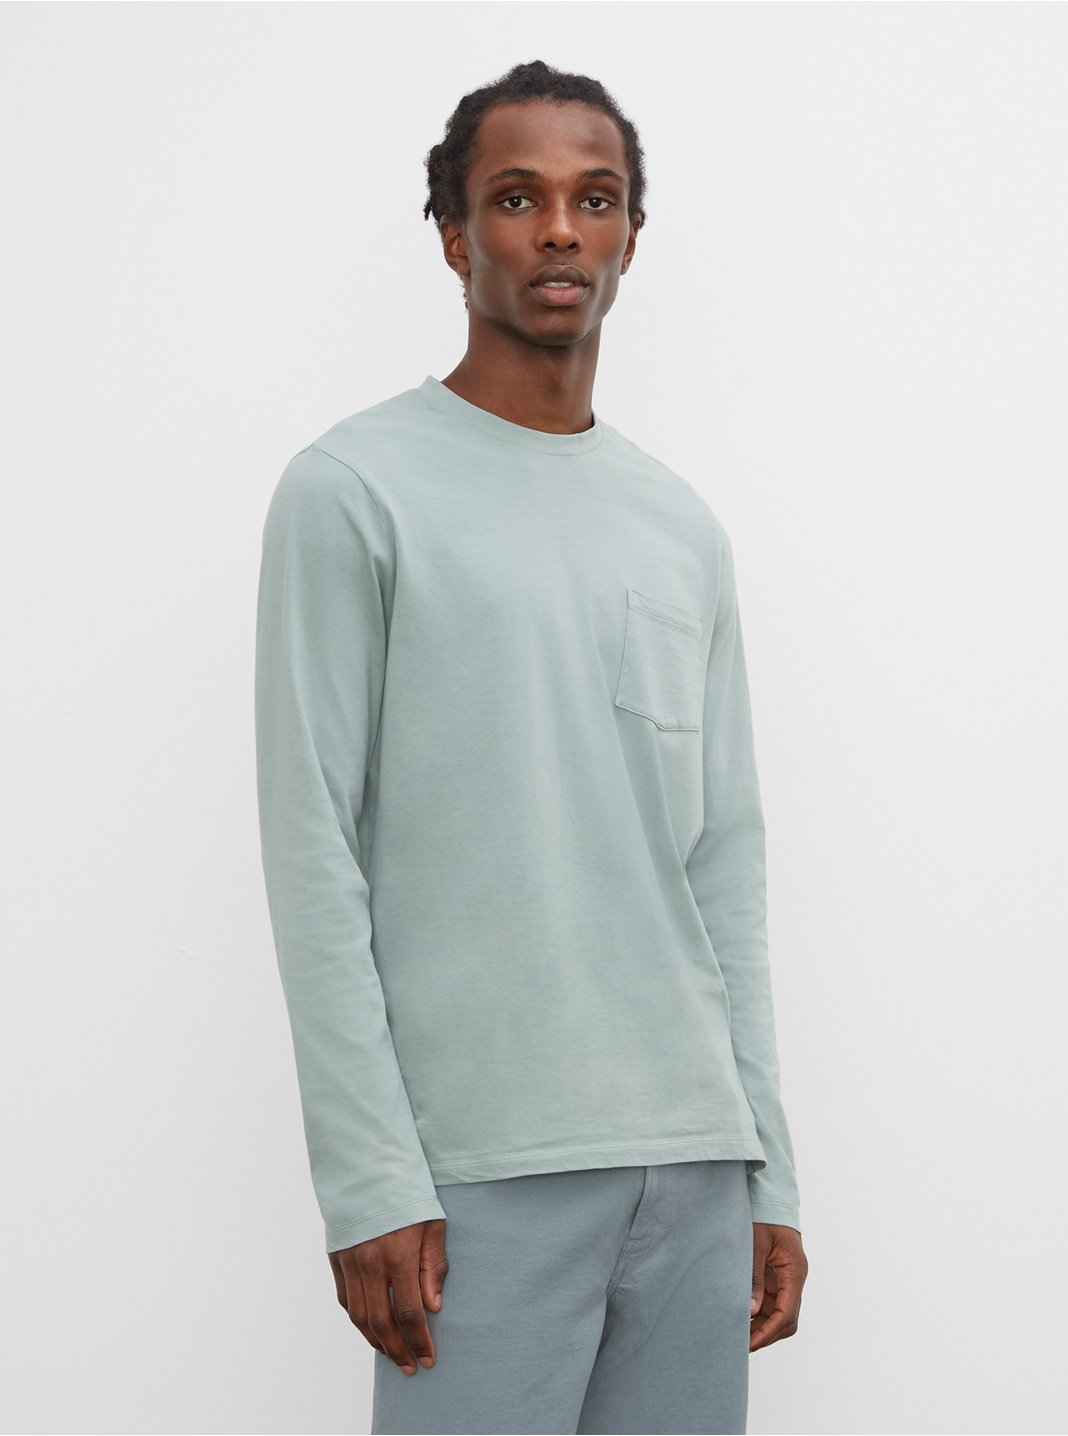 Williams Tea Dyed Long-Sleeve Crew